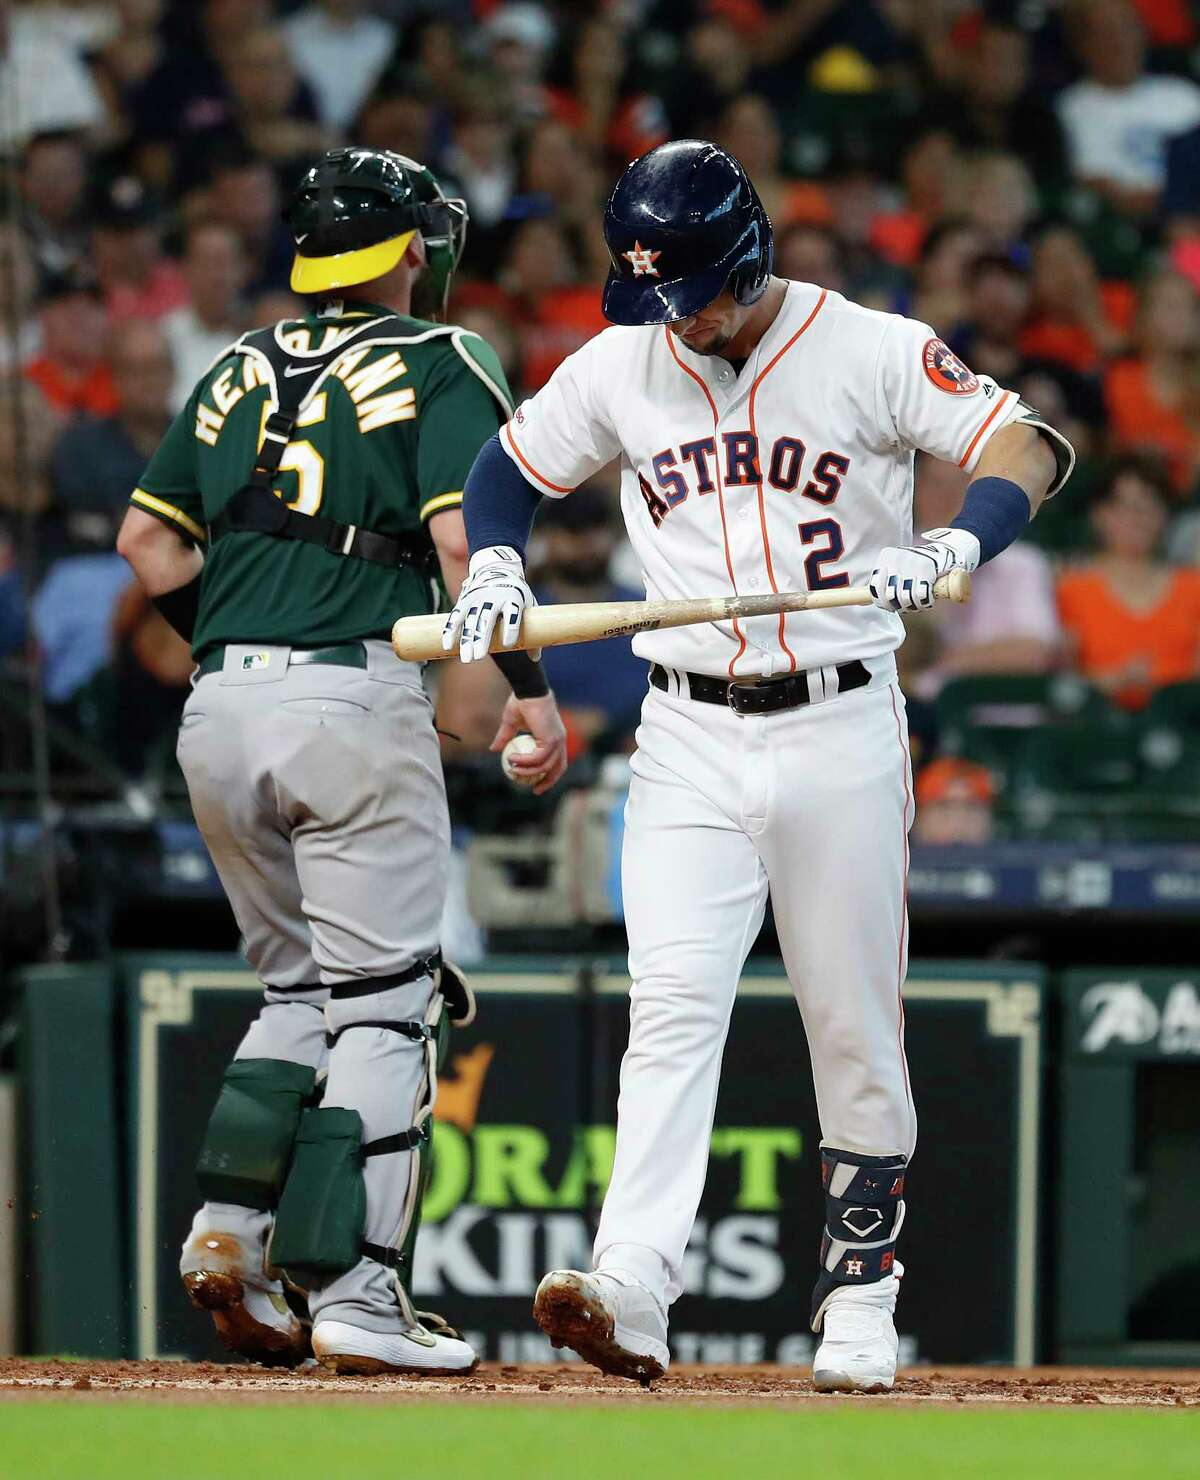 Houston Astros Alex Bregman (2) reacts after striking out against Oakland Athletics starting pitcher Chris Bassitt (40) during the first inning of an MLB baseball game at Minute Maid Park, Wednesday, July 24, 2019.